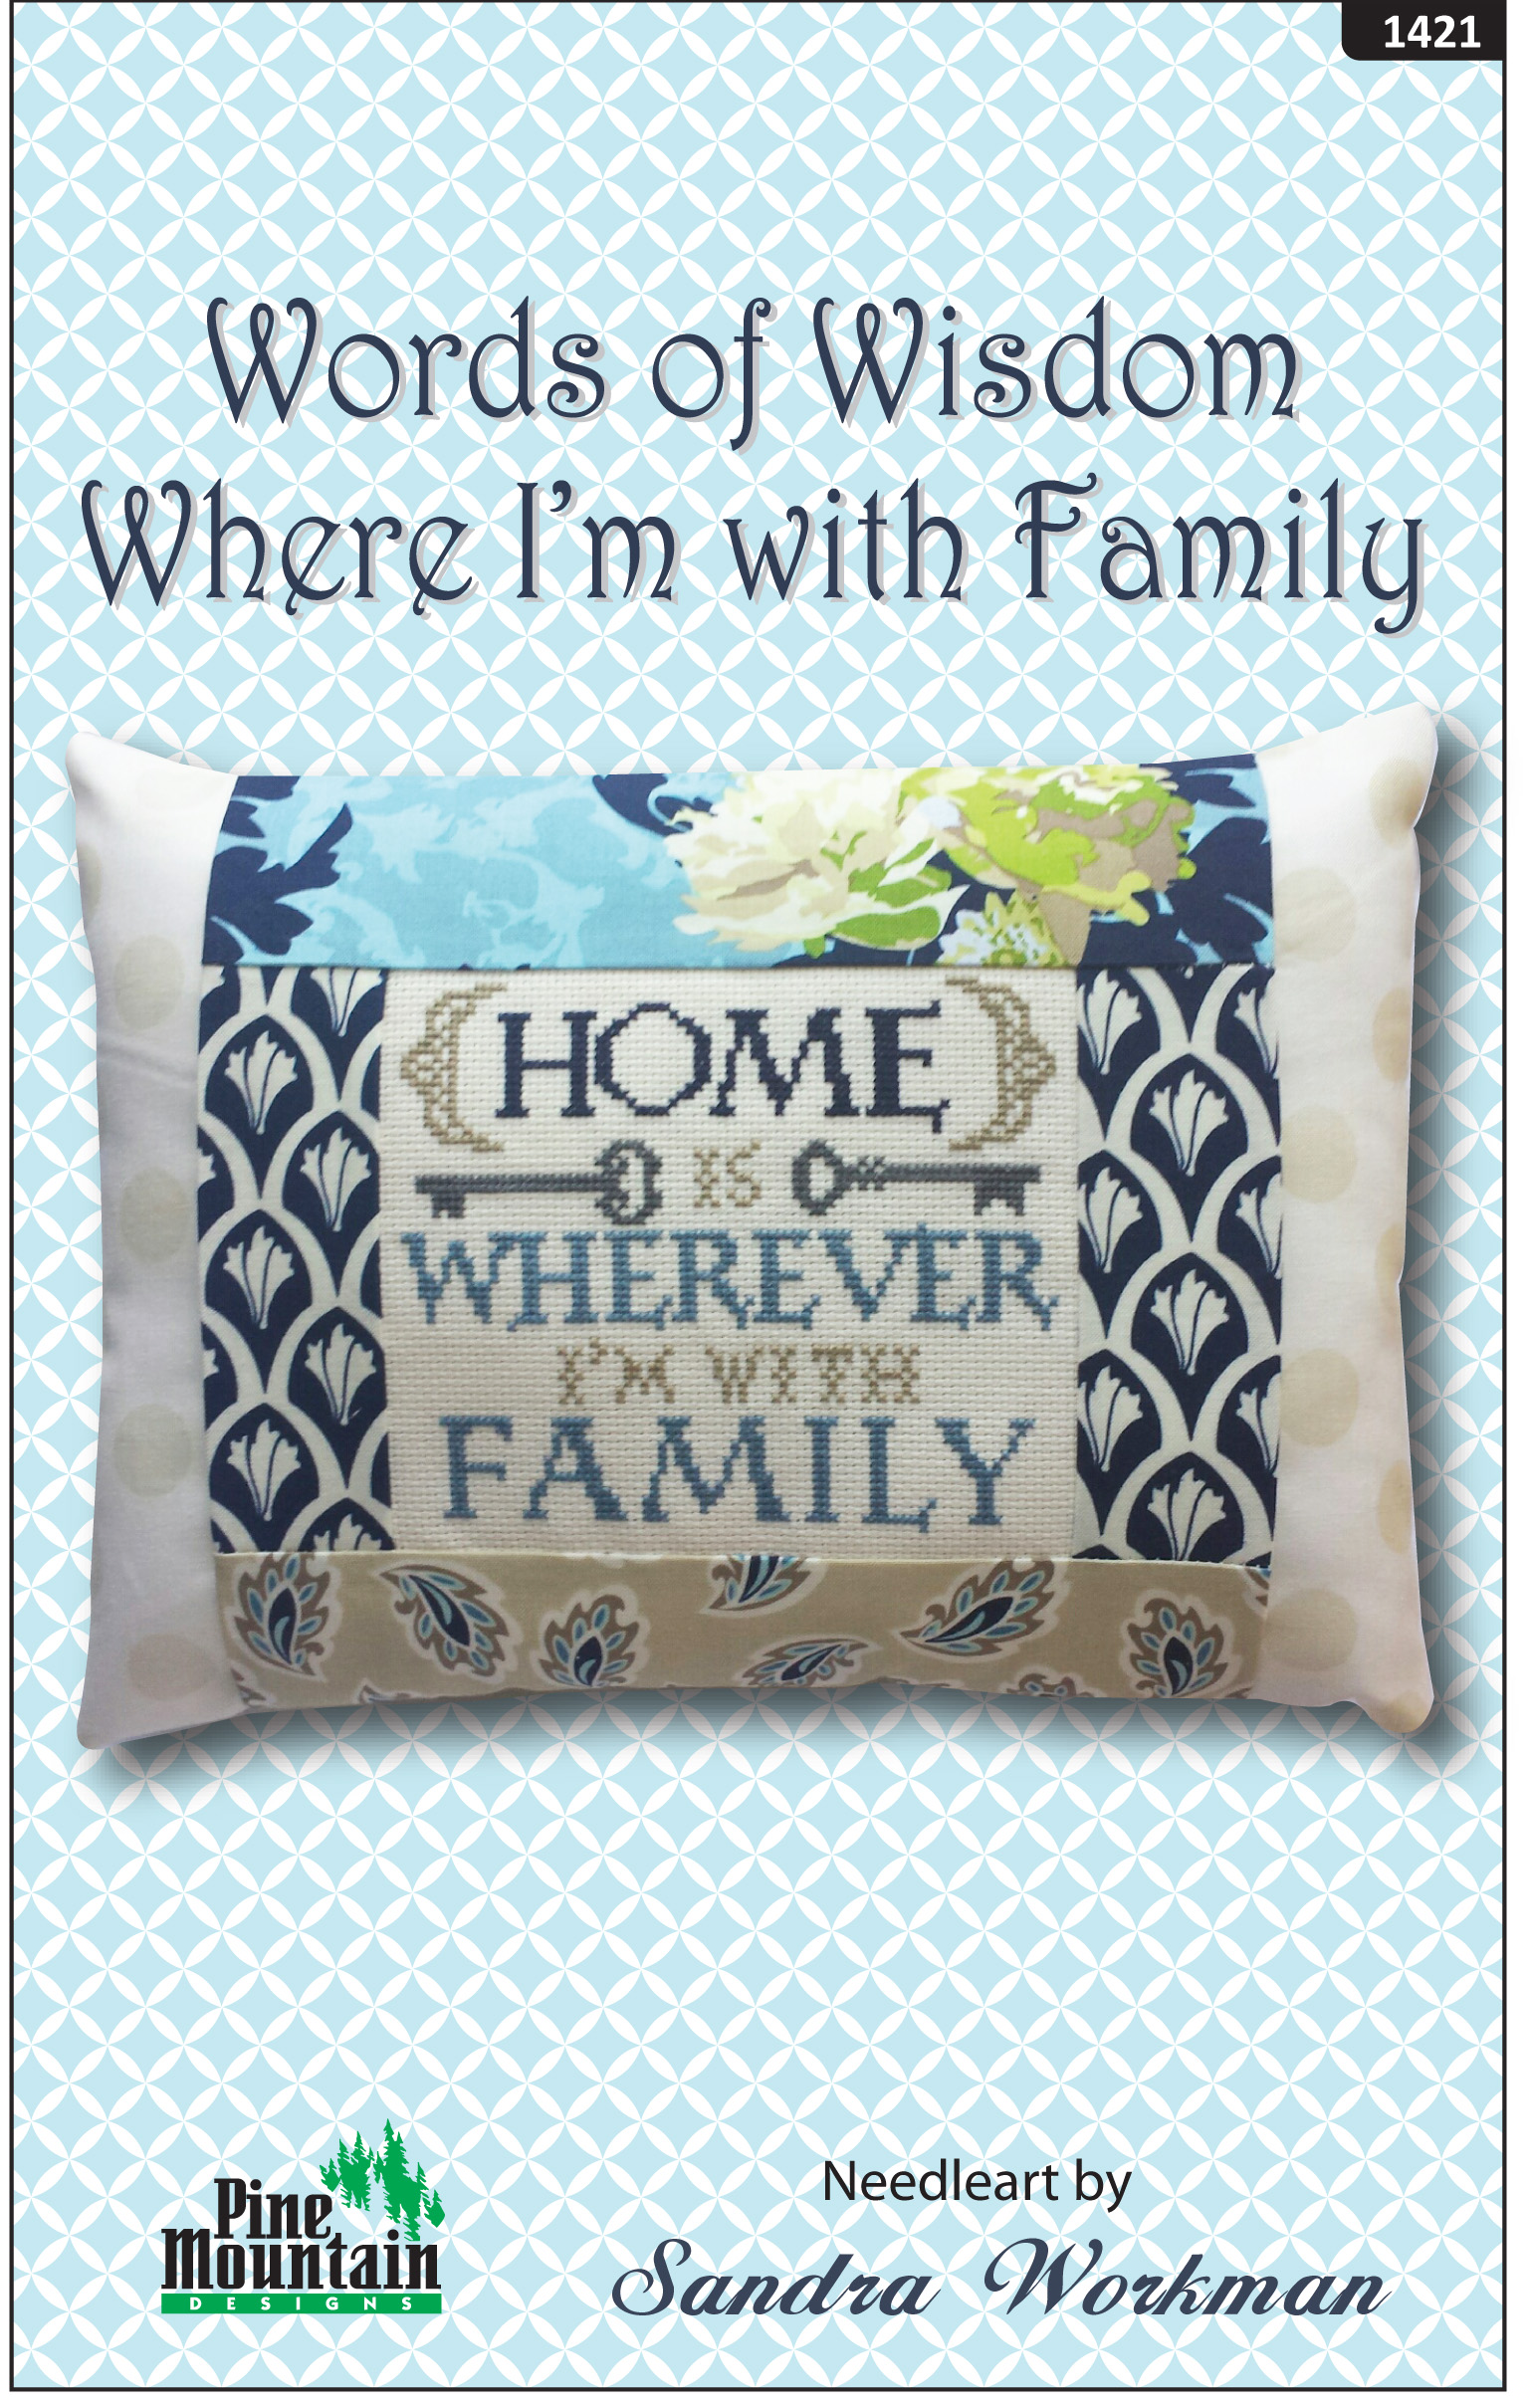 Where I'm with Family words of wisdom pillow kit 1421